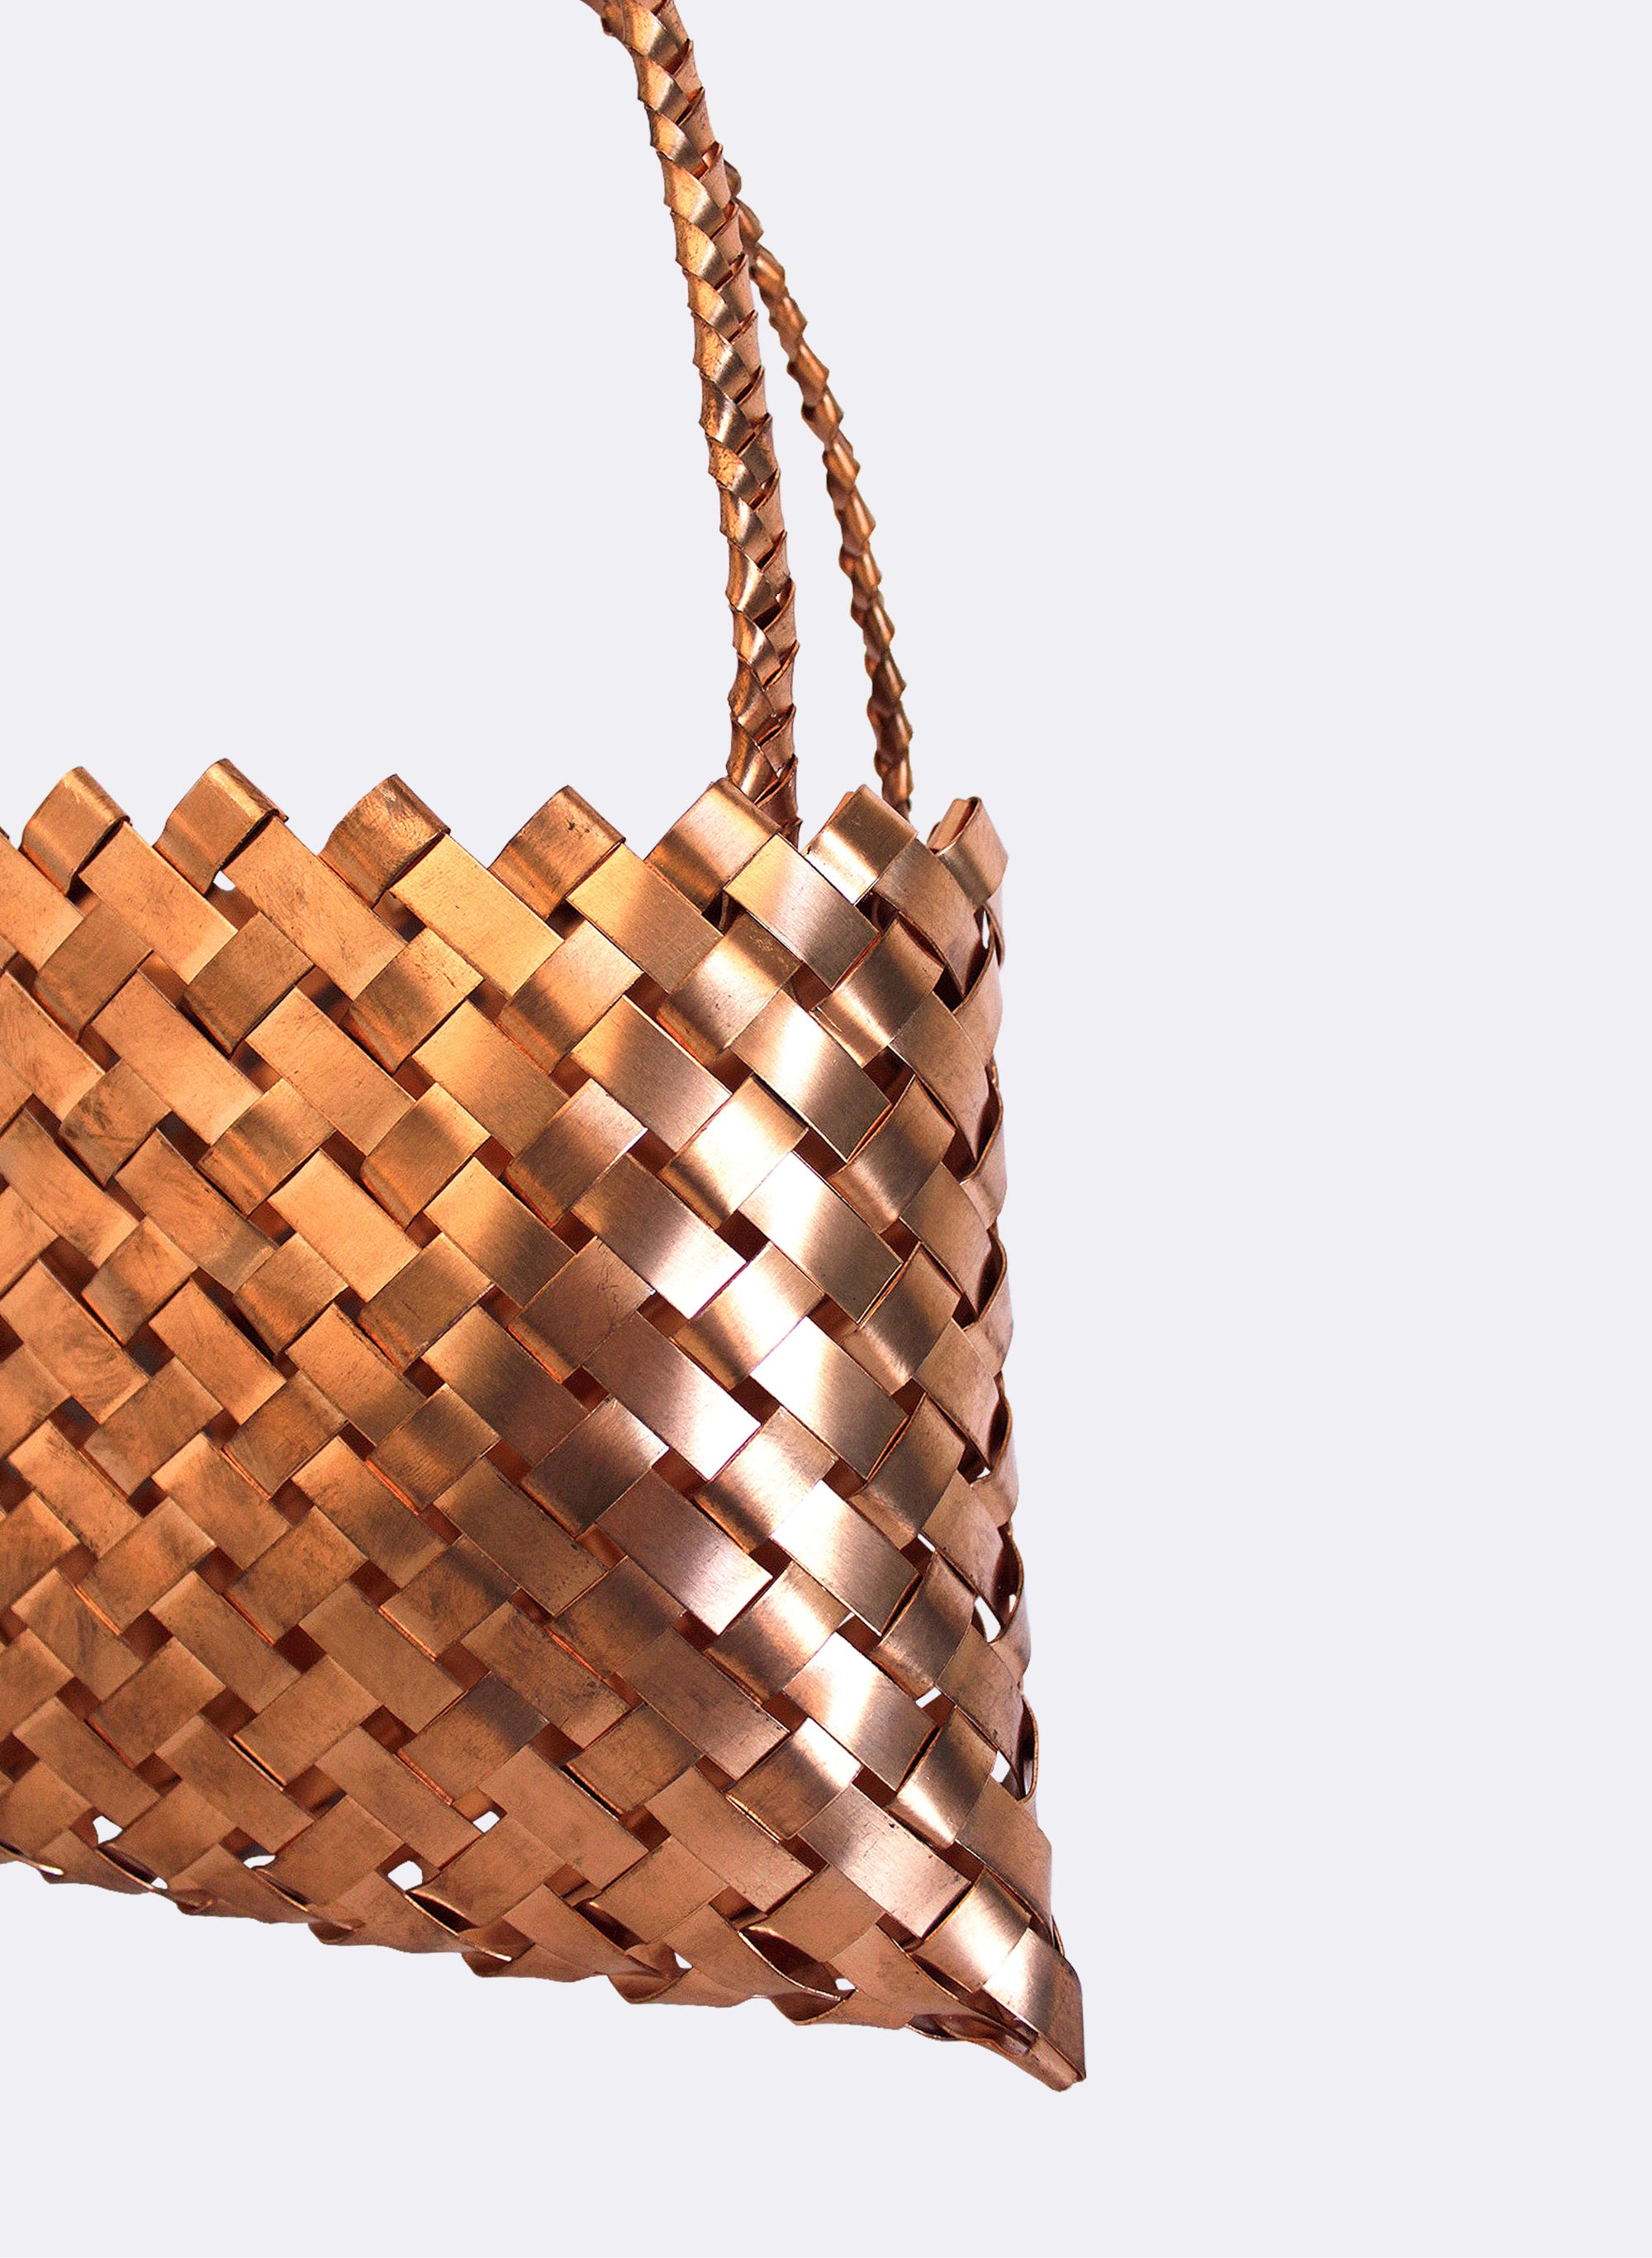 Copper Kete (16 End)